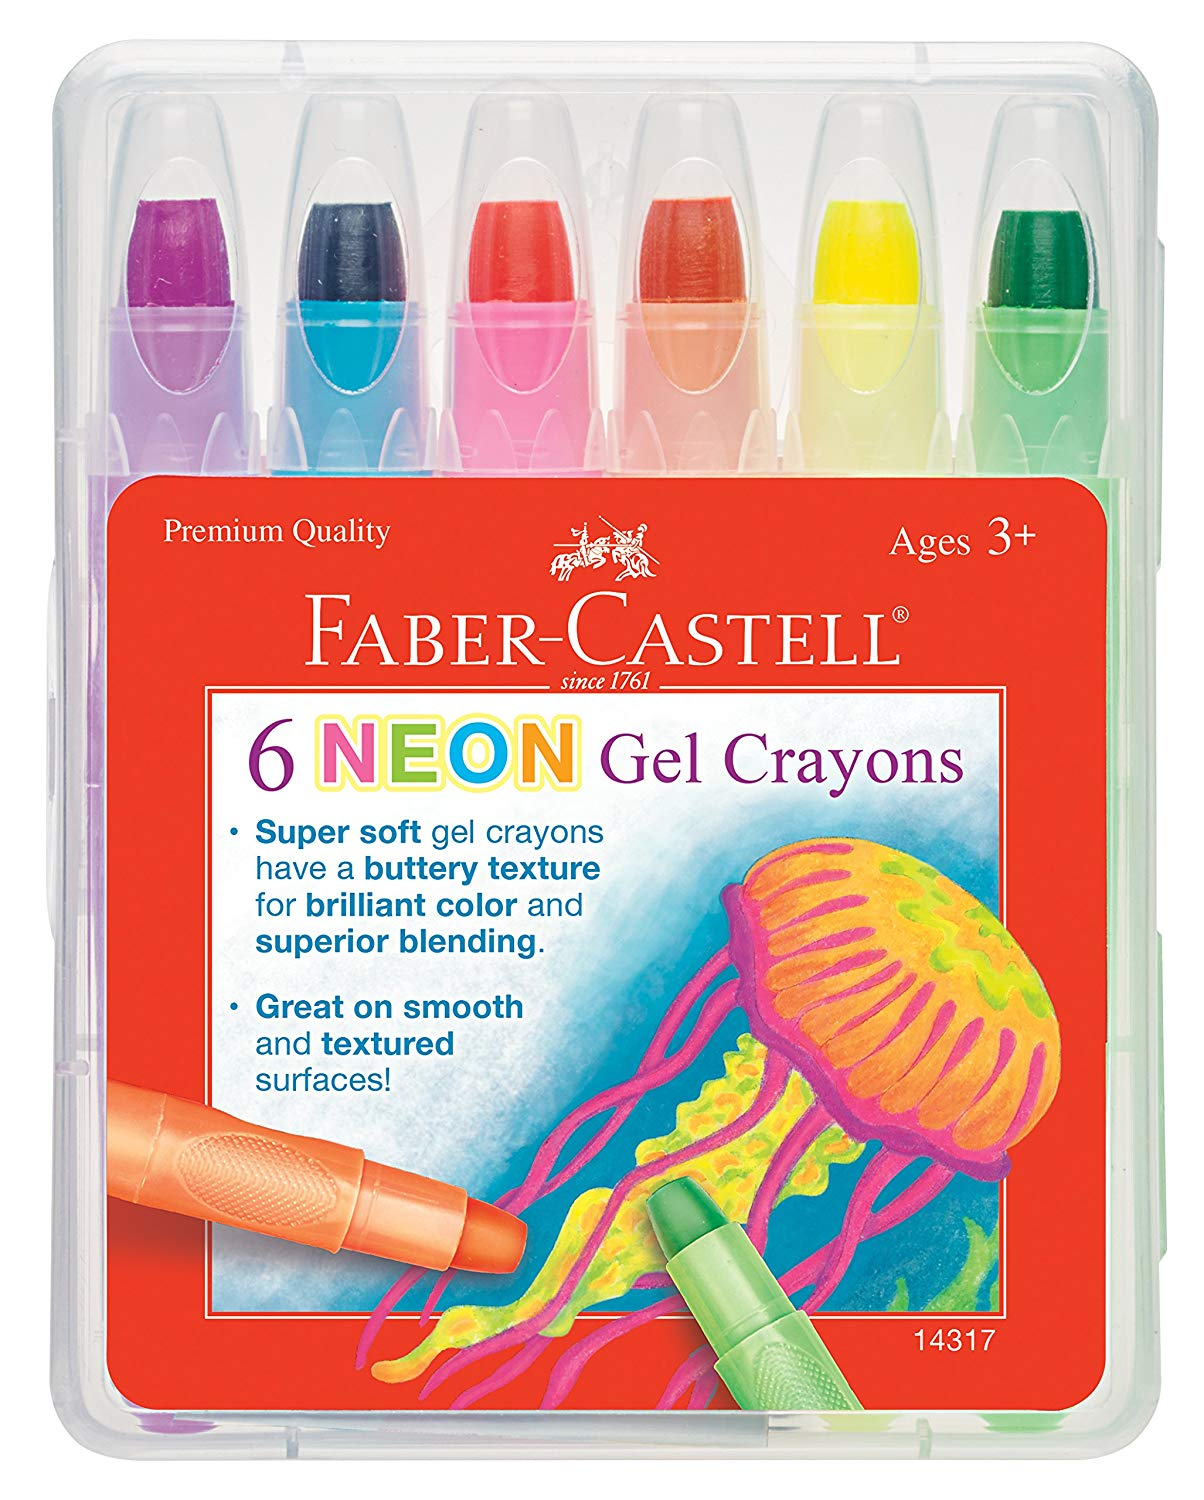 Faber Castell Neon Gel Crayons Image